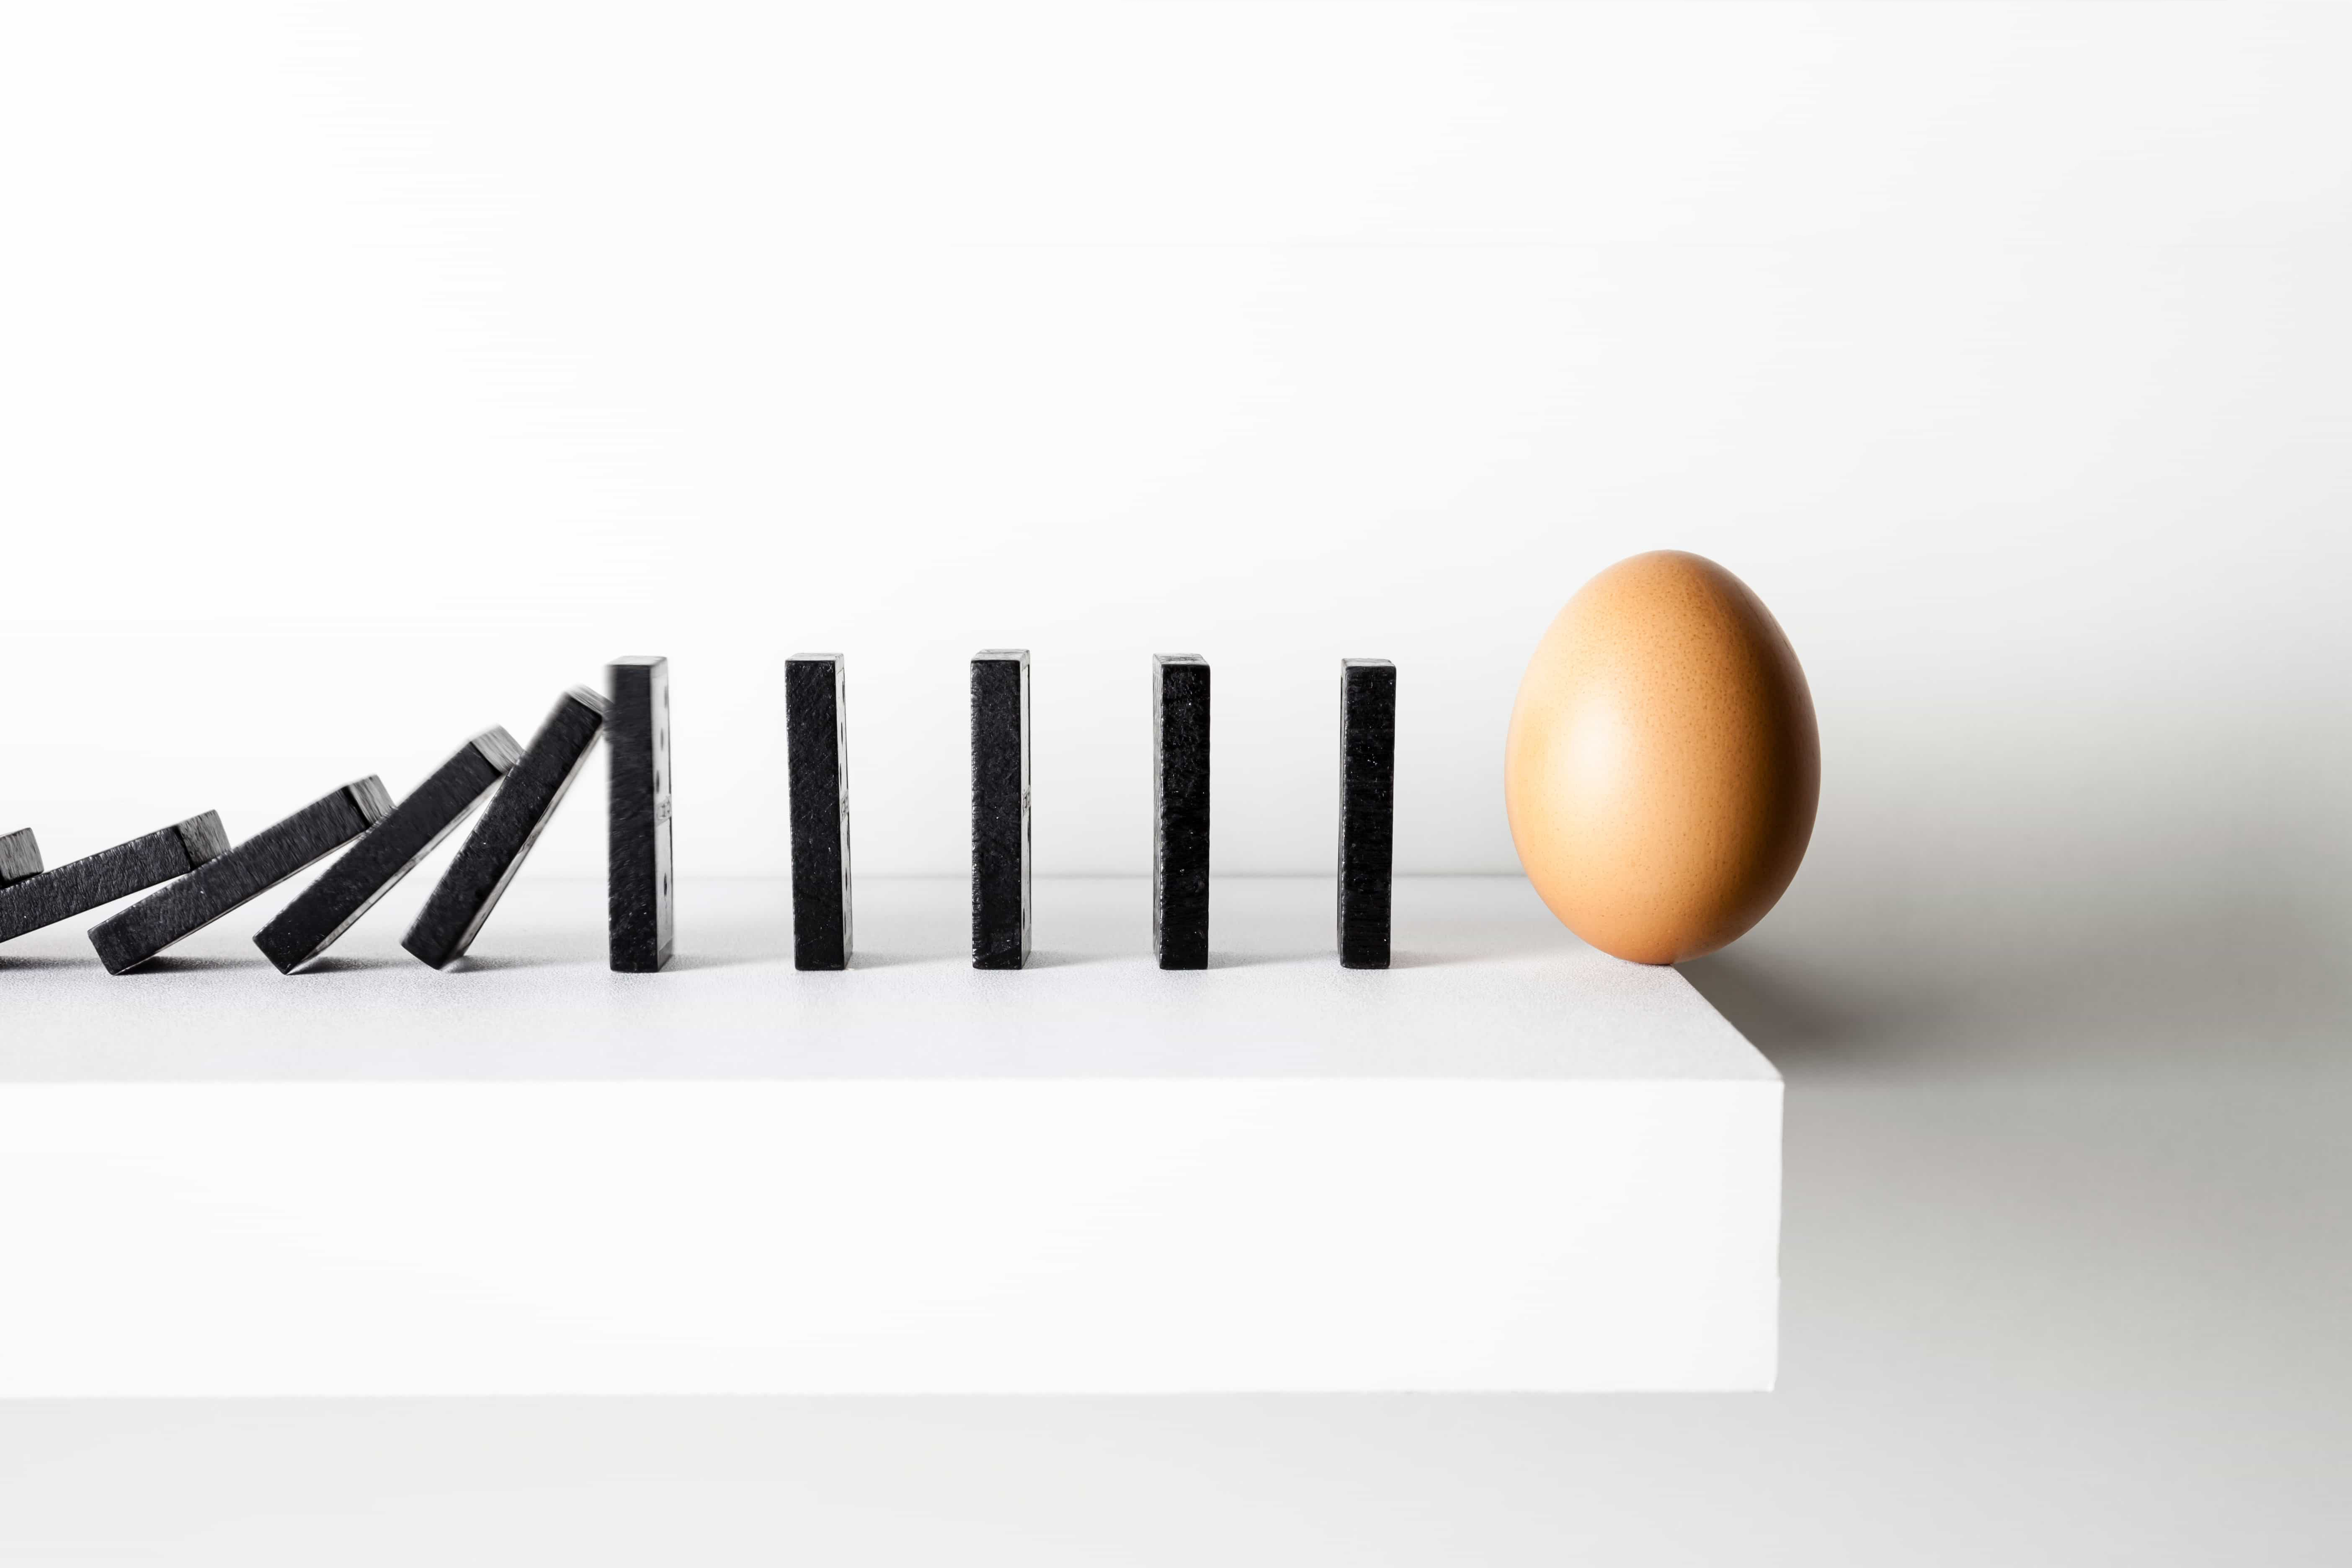 Dominoes on a shelf leading to an egg balanced precariously on the edge